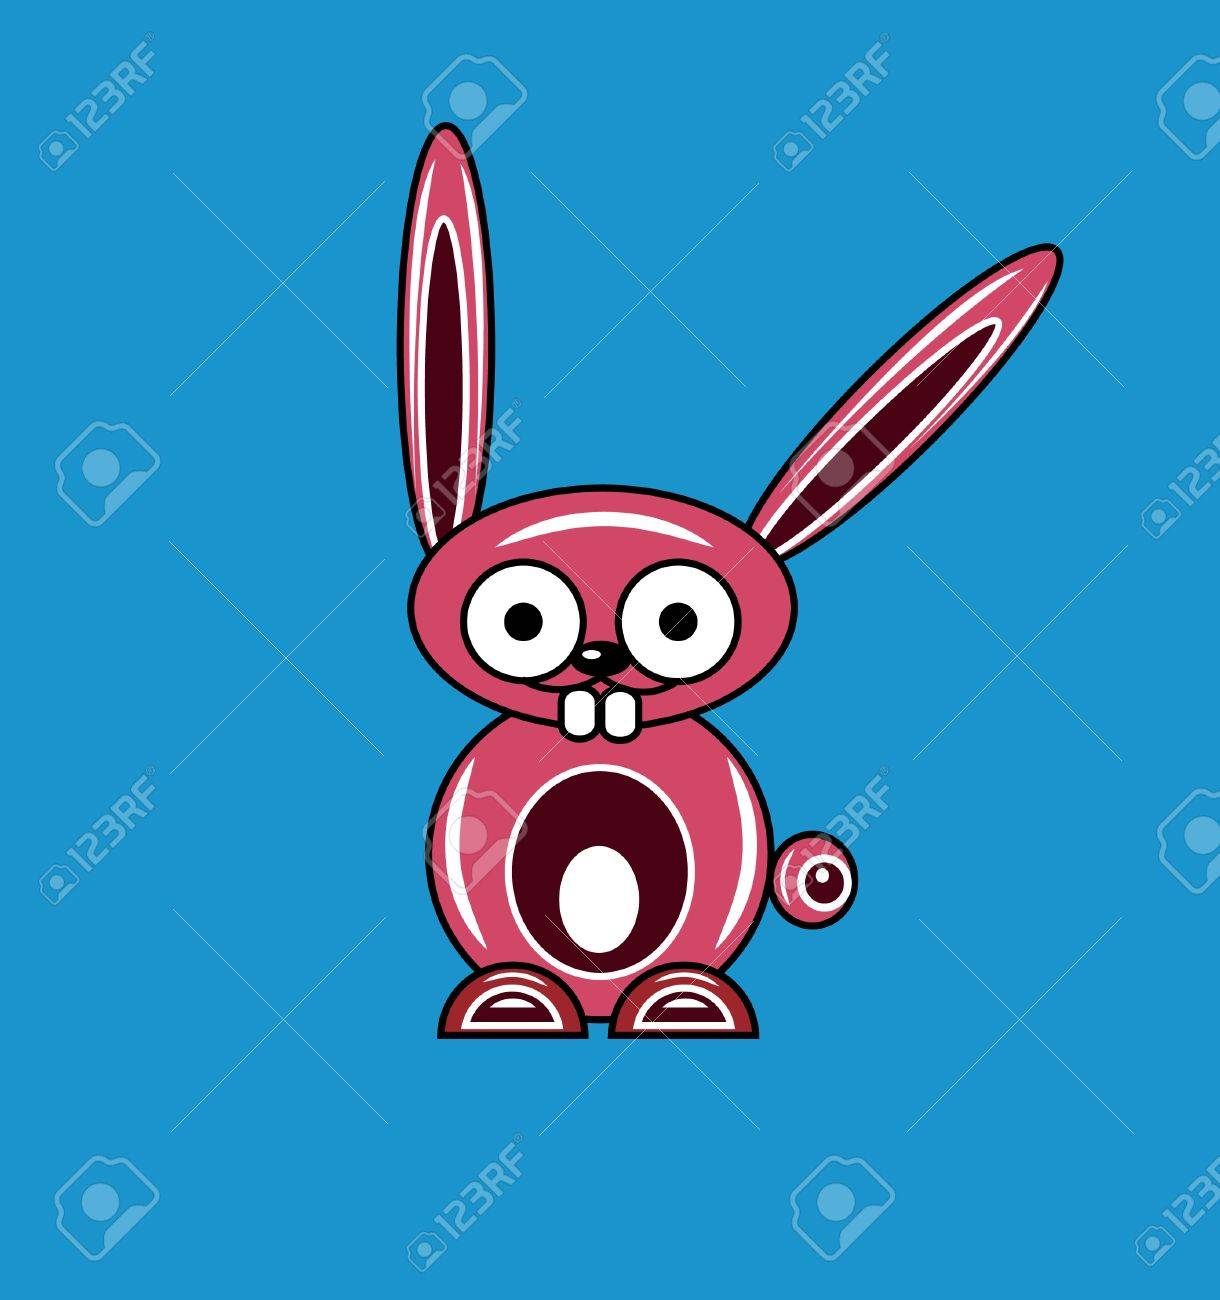 Pink cartoon rabbit on a blue background Stock Vector - 8631591